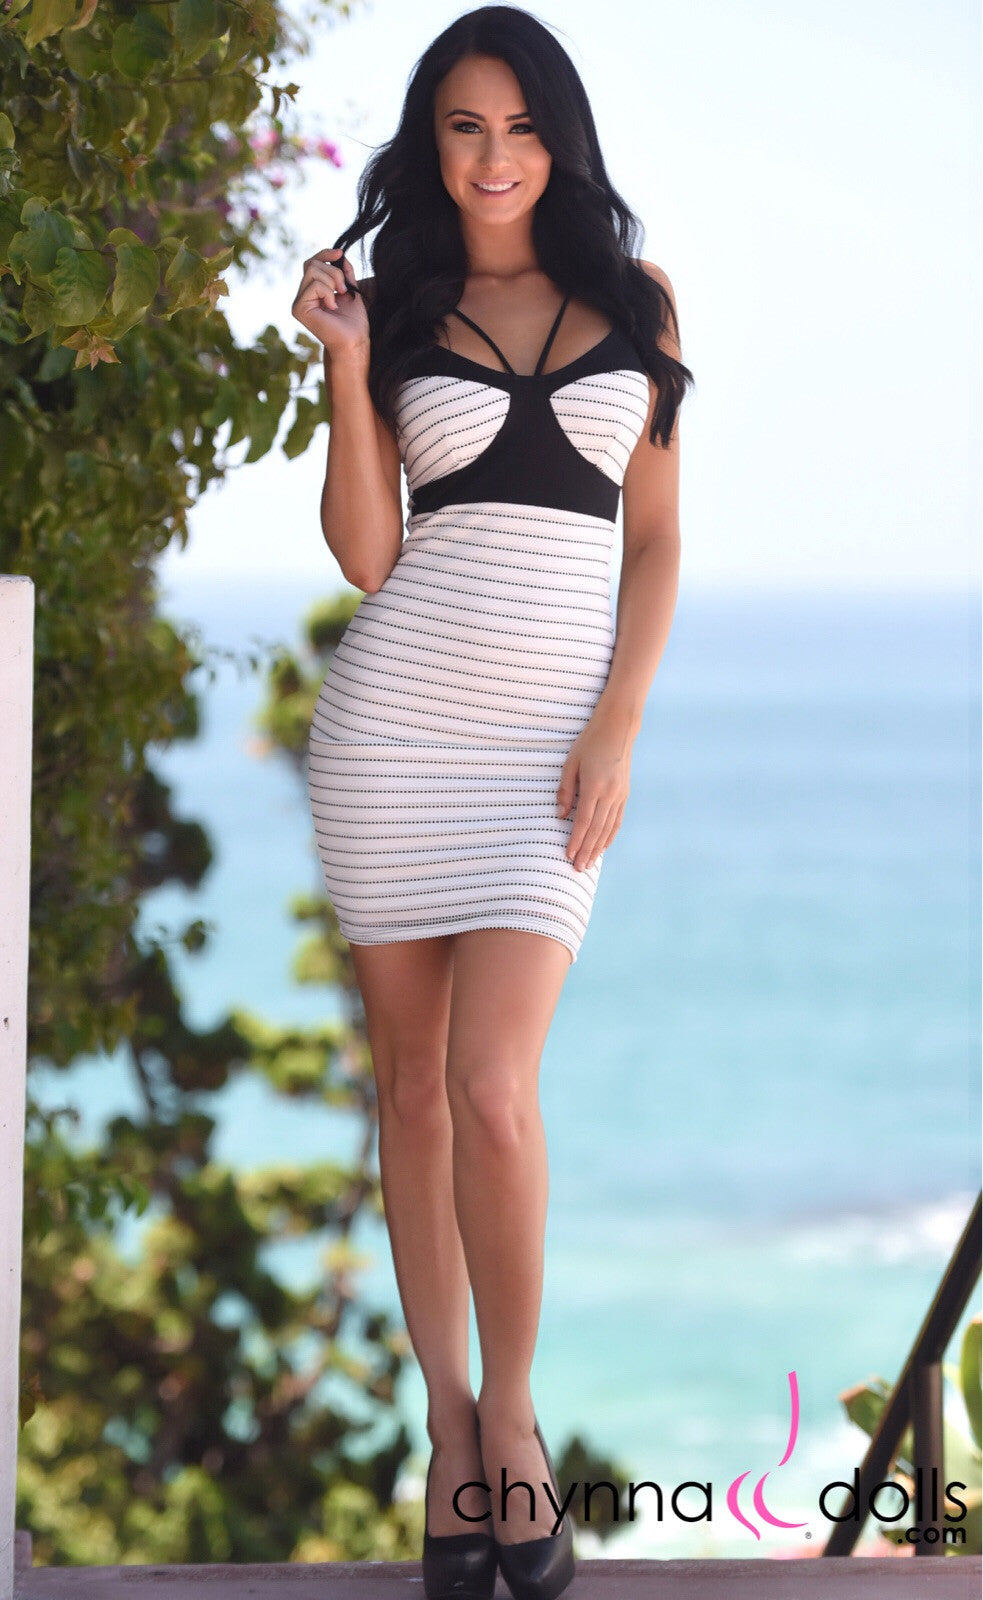 Becca: Double Spaghetti Strap Dress in Pinstripe - Chynna Dolls Swimwear